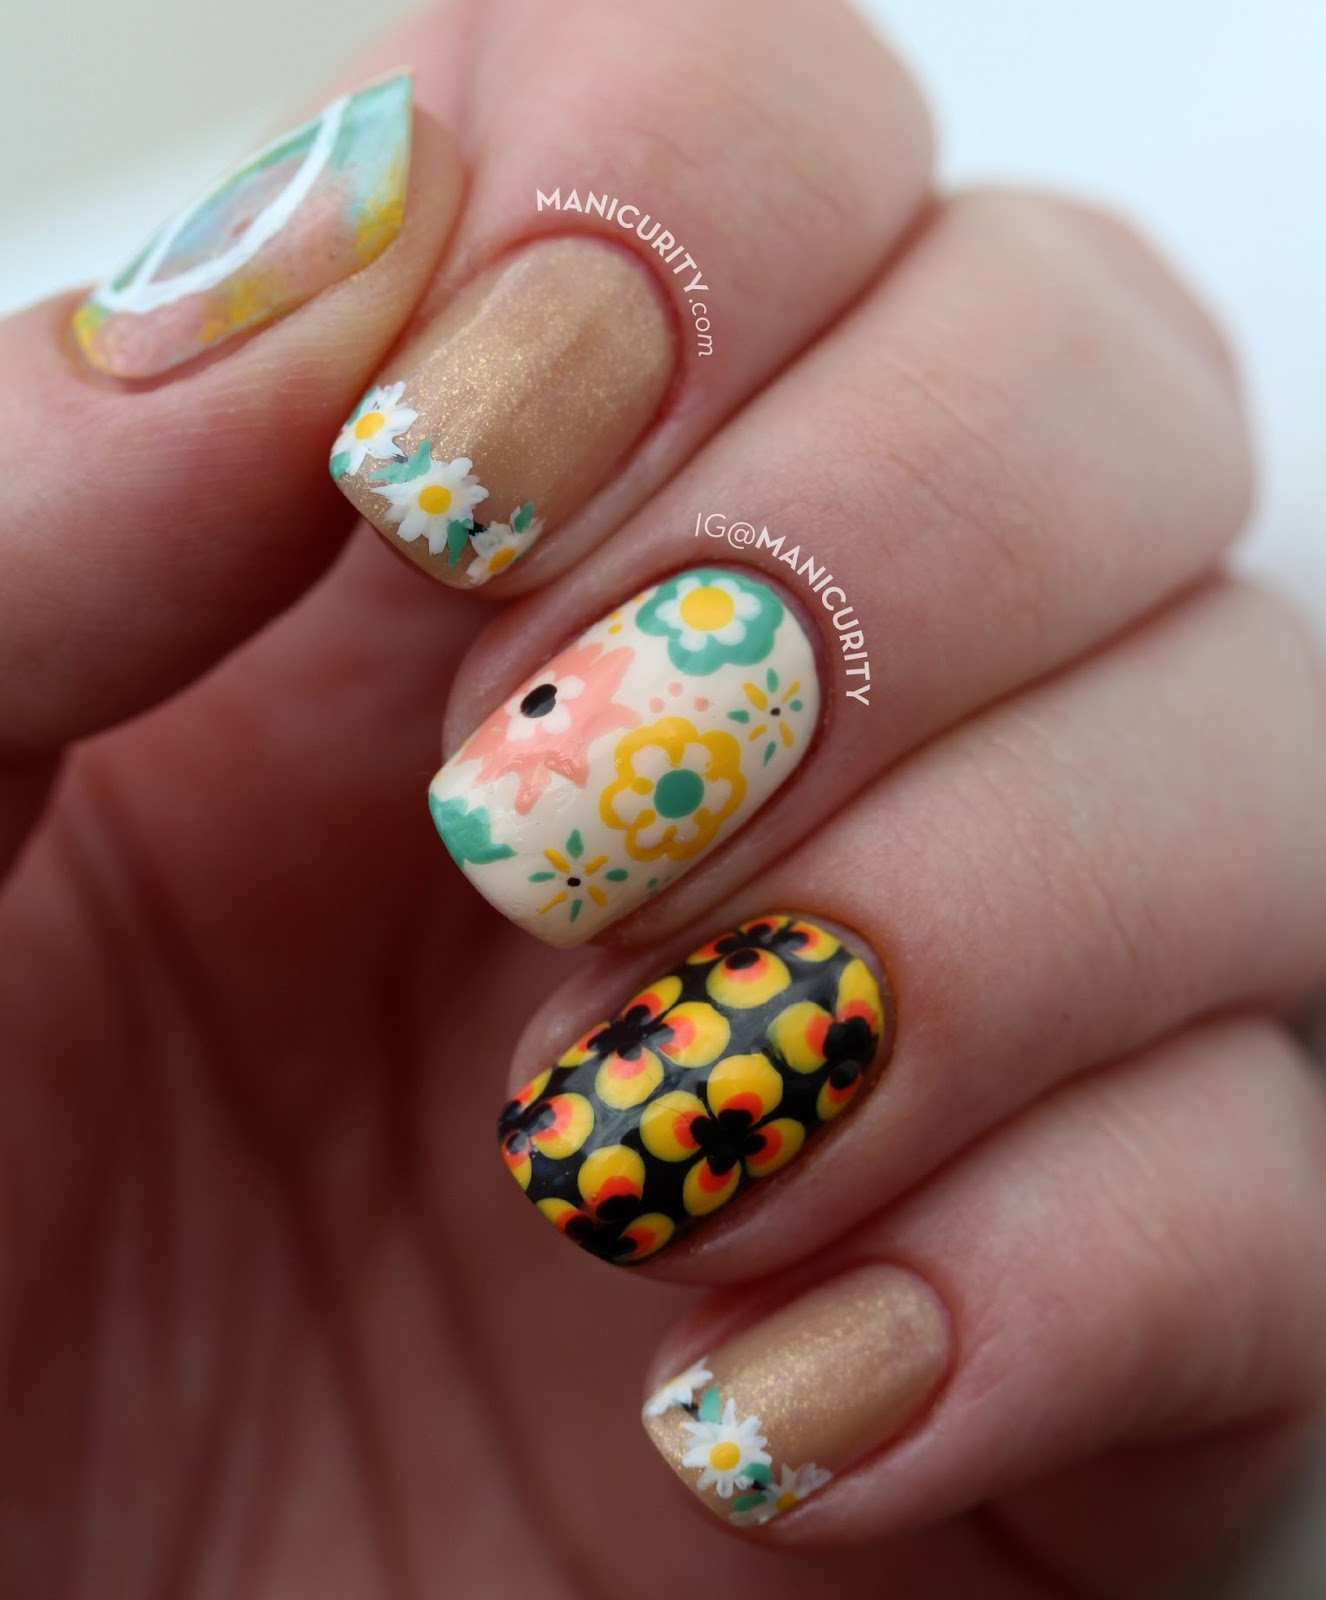 The Digit-al Dozen: Can You Dig This Freehand Seventies Skittle Set of Nail Art? Totally Groovy! Featuring a pastel floral french nail design and funky dot accent nail | Manicurity.com